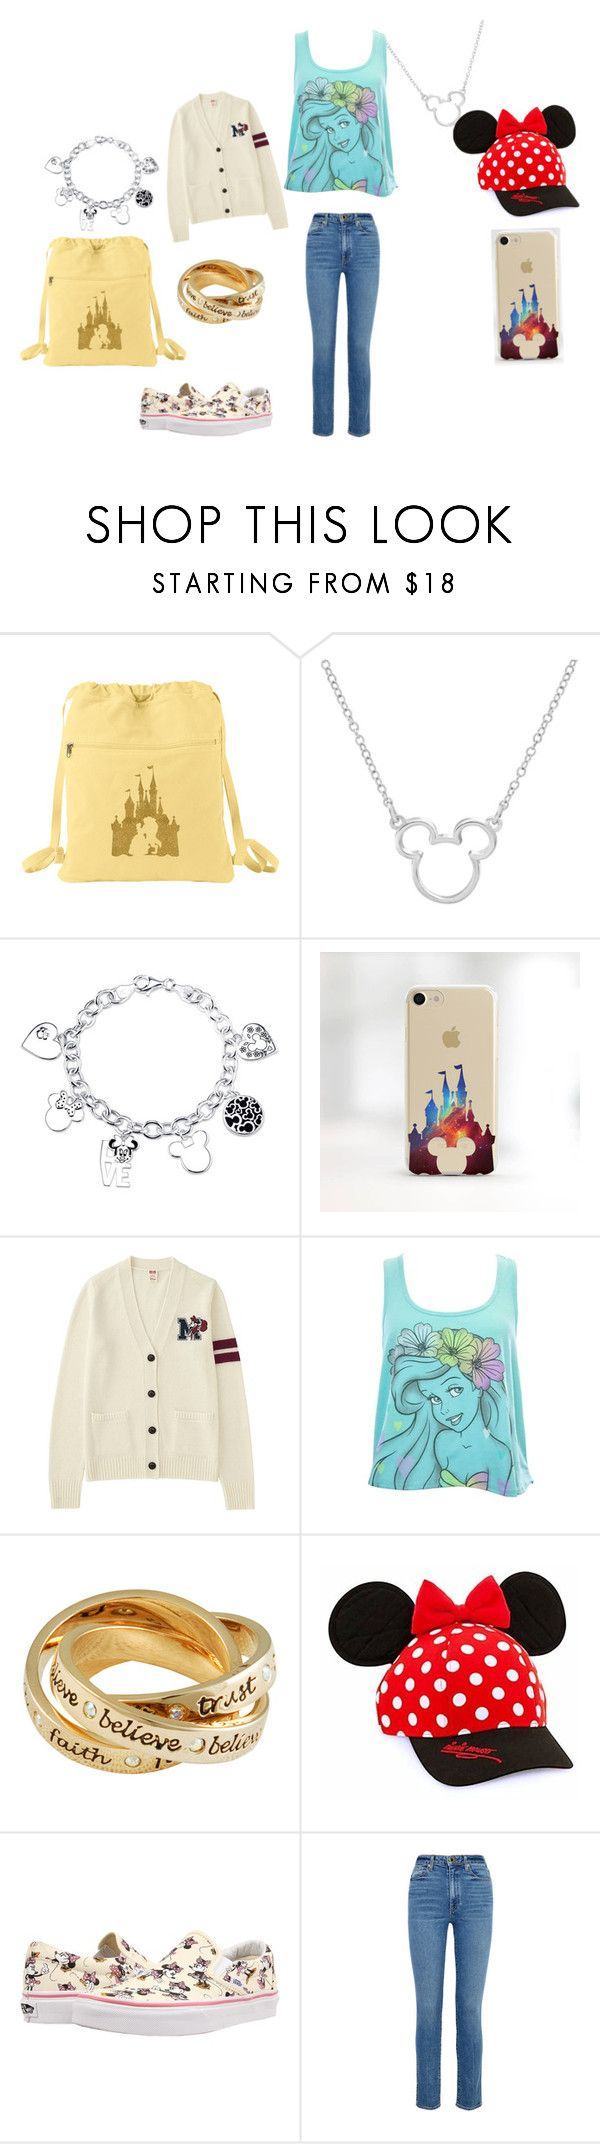 """Disneyland park day"" by ellie-may346 on Polyvore featuring Disney, Uniqlo, Disney Couture, Vans and Khaite"